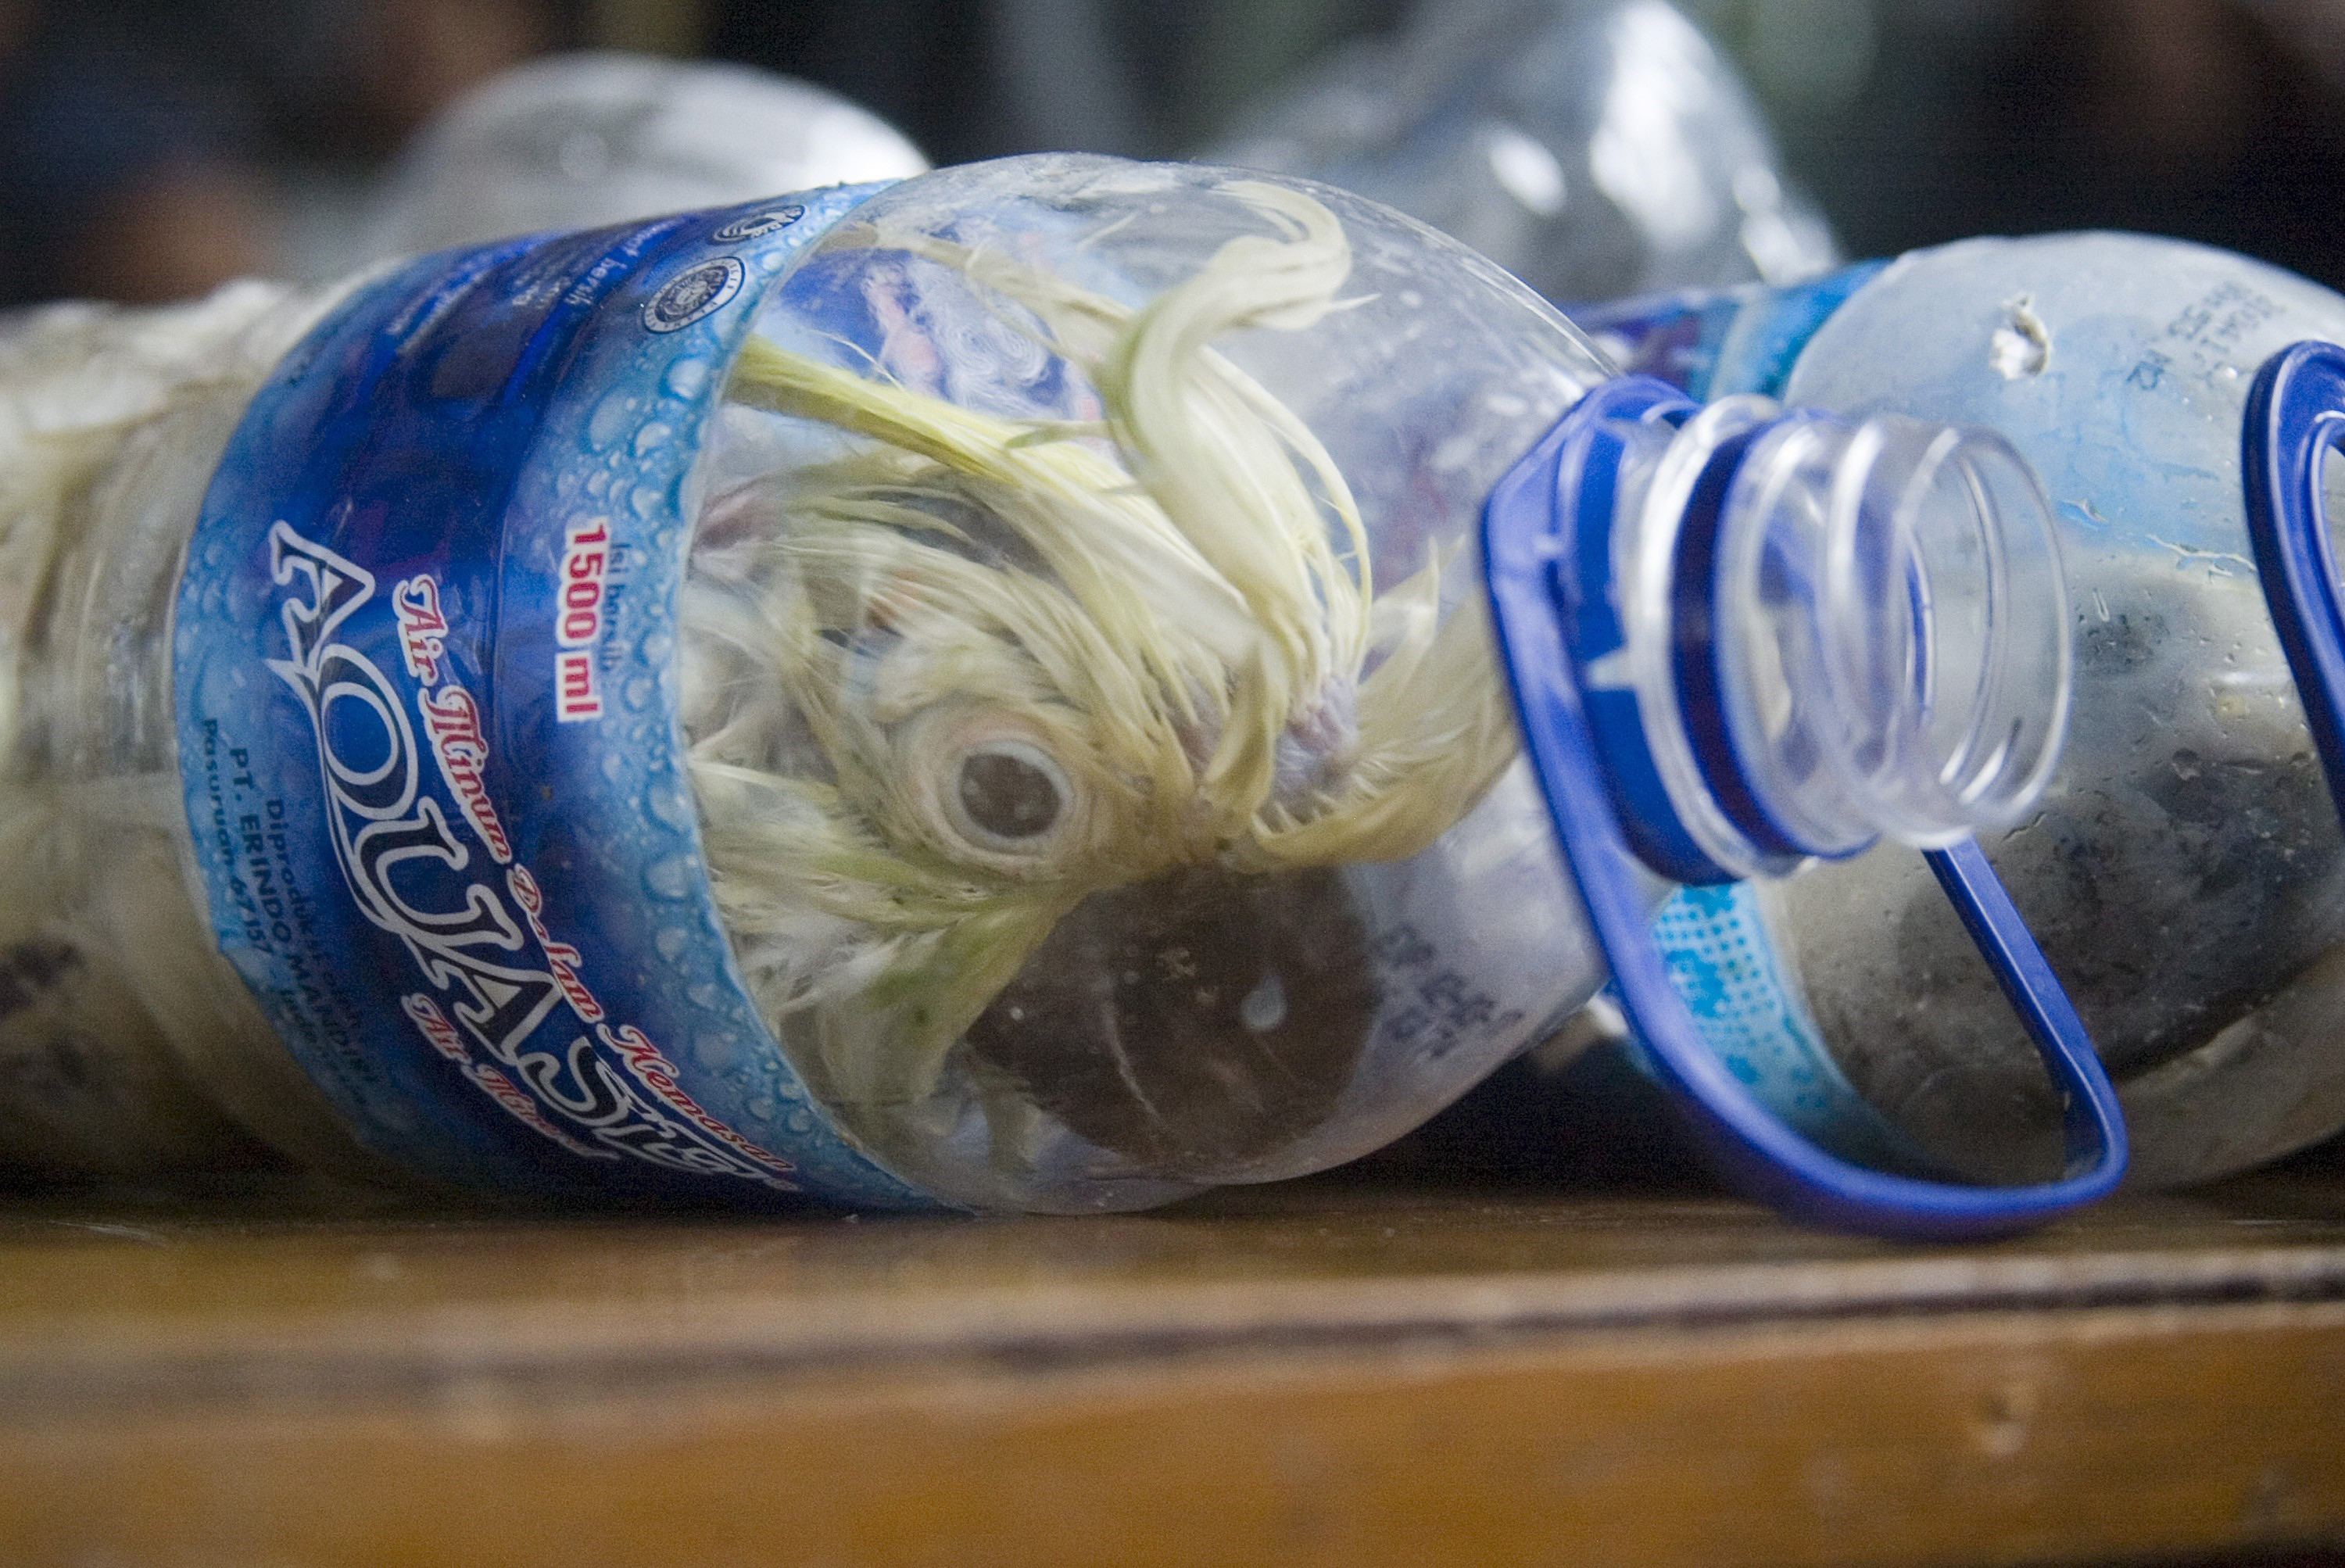 A Cacatua sulphurea that was successfully secured from illegal wildlife trading is seen in an empty bottle in Surabaya, Indonesia, on May 4, 2015